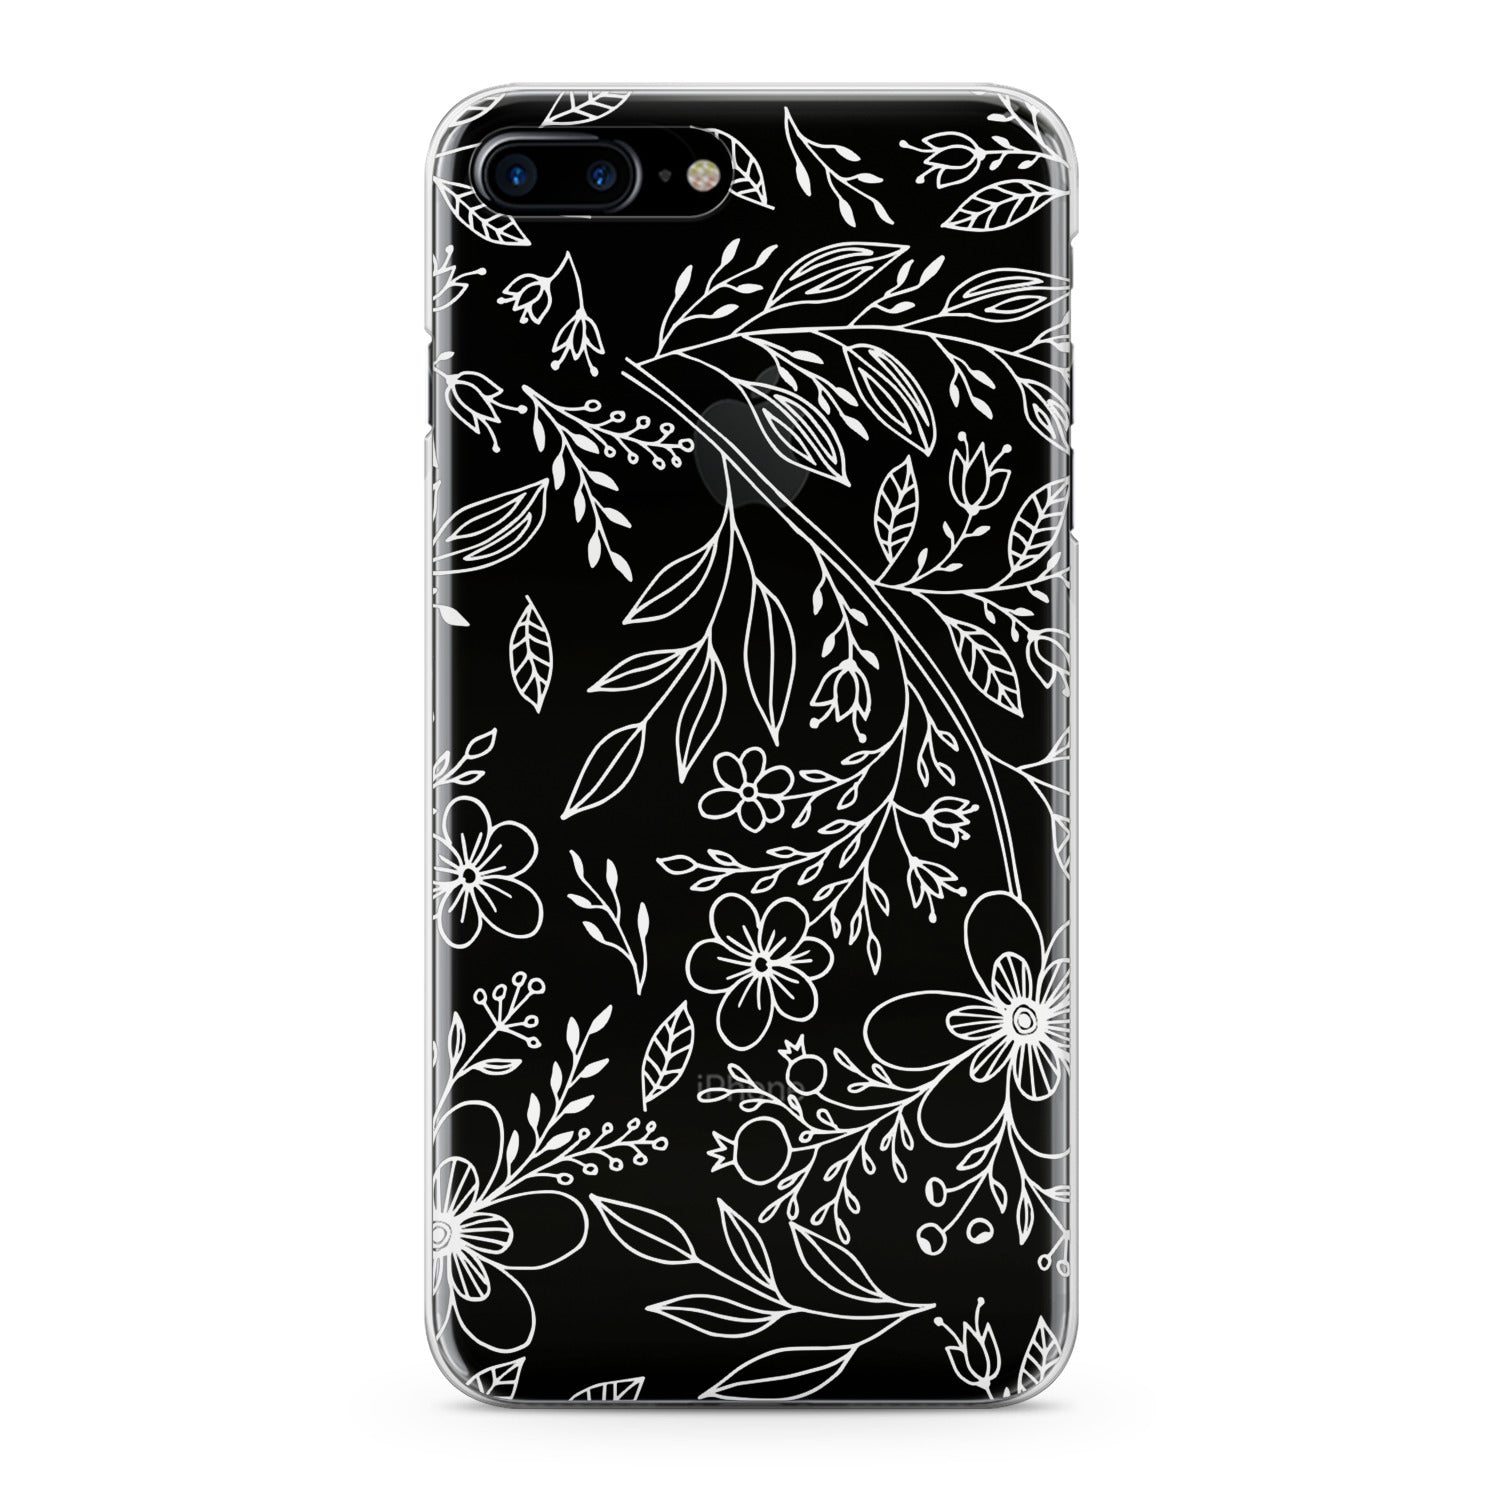 Lex Altern Contoured Wildflowers Phone Case for your iPhone & Android phone.